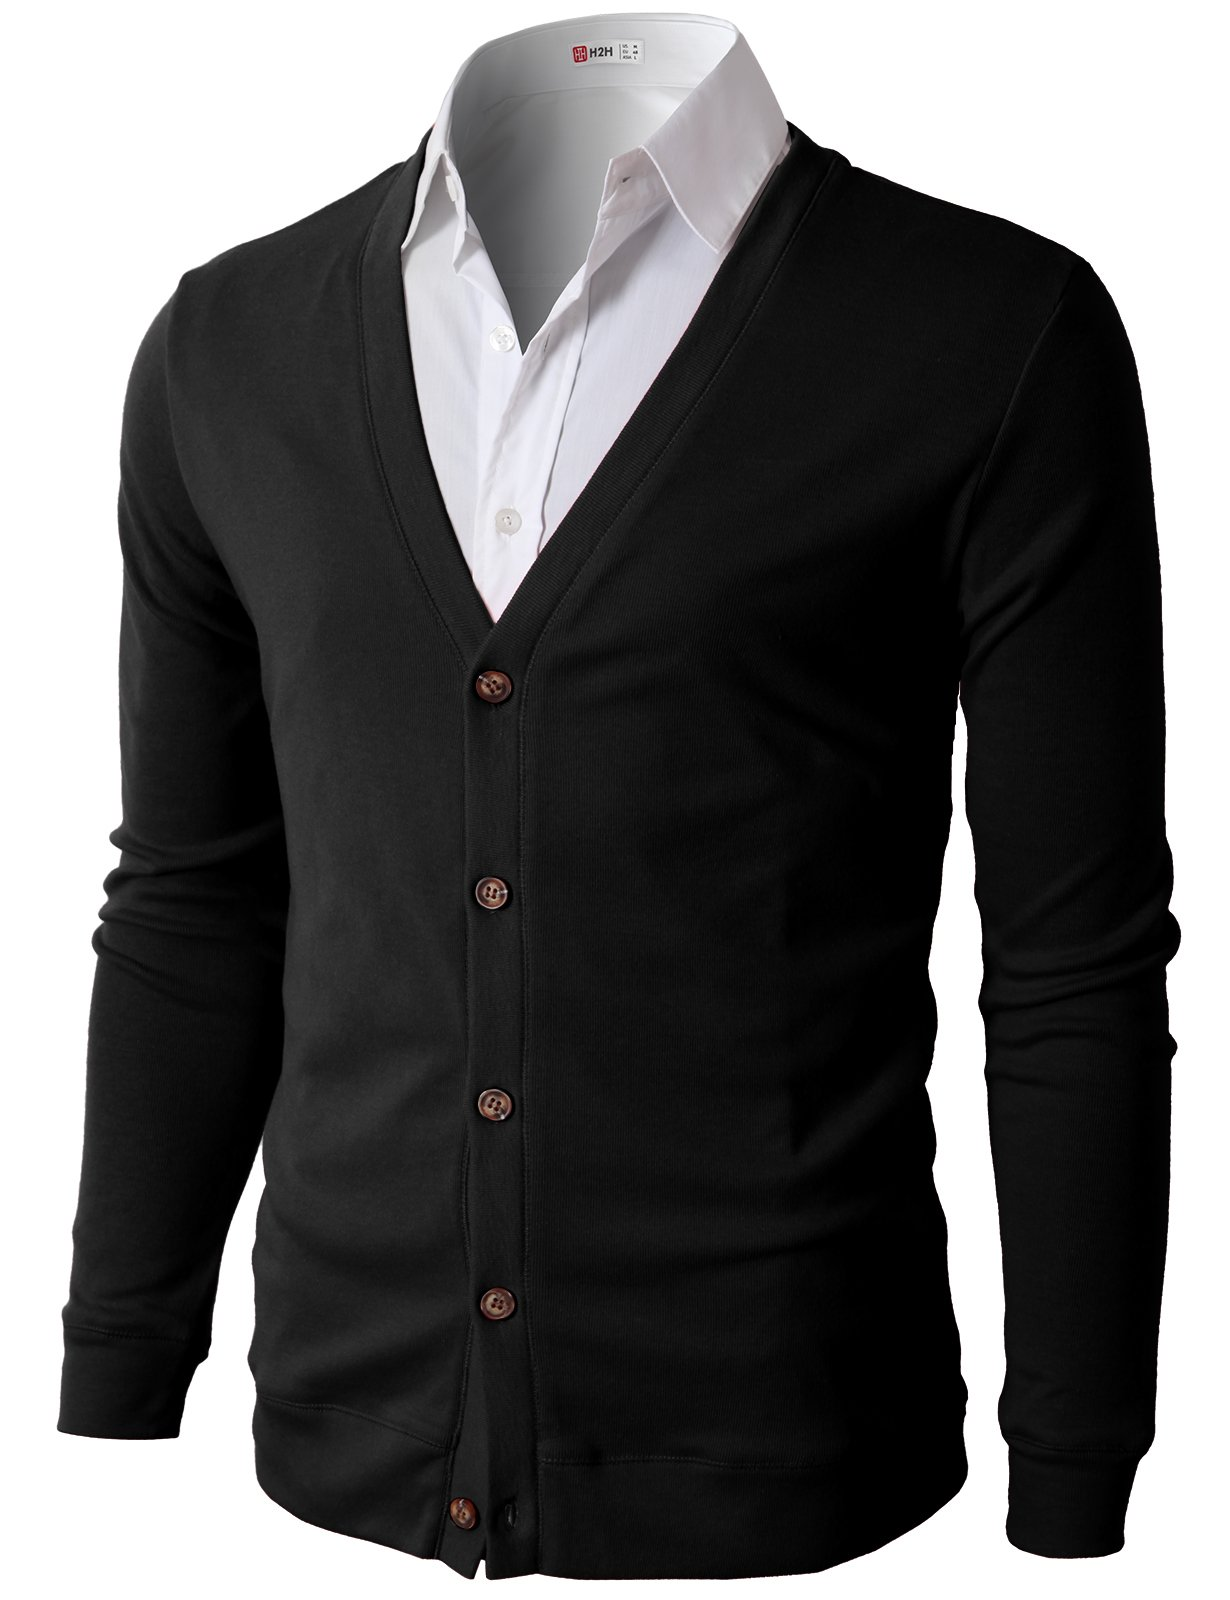 H2H Mens Button Down V Neck Cardigans Black US L/Asia XL (CMOCAL012) by H2H